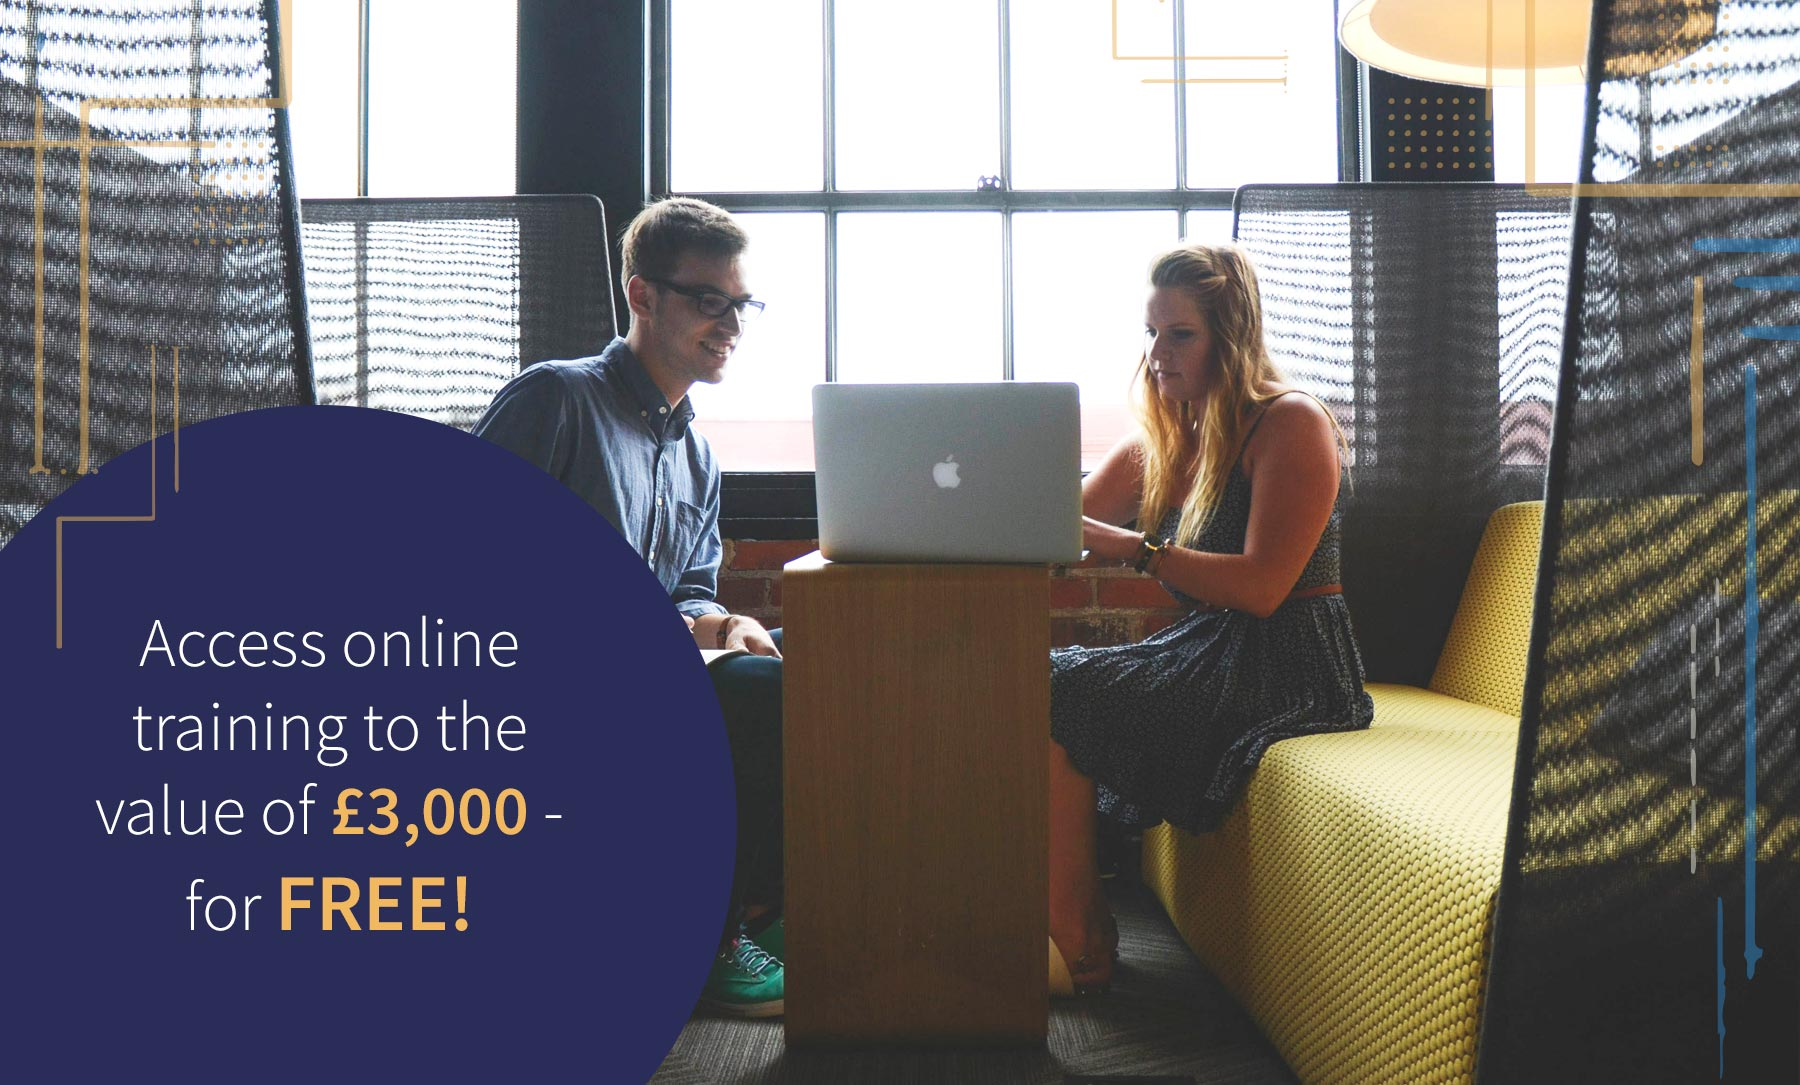 Access online training to the value of £3,000 - for FREE